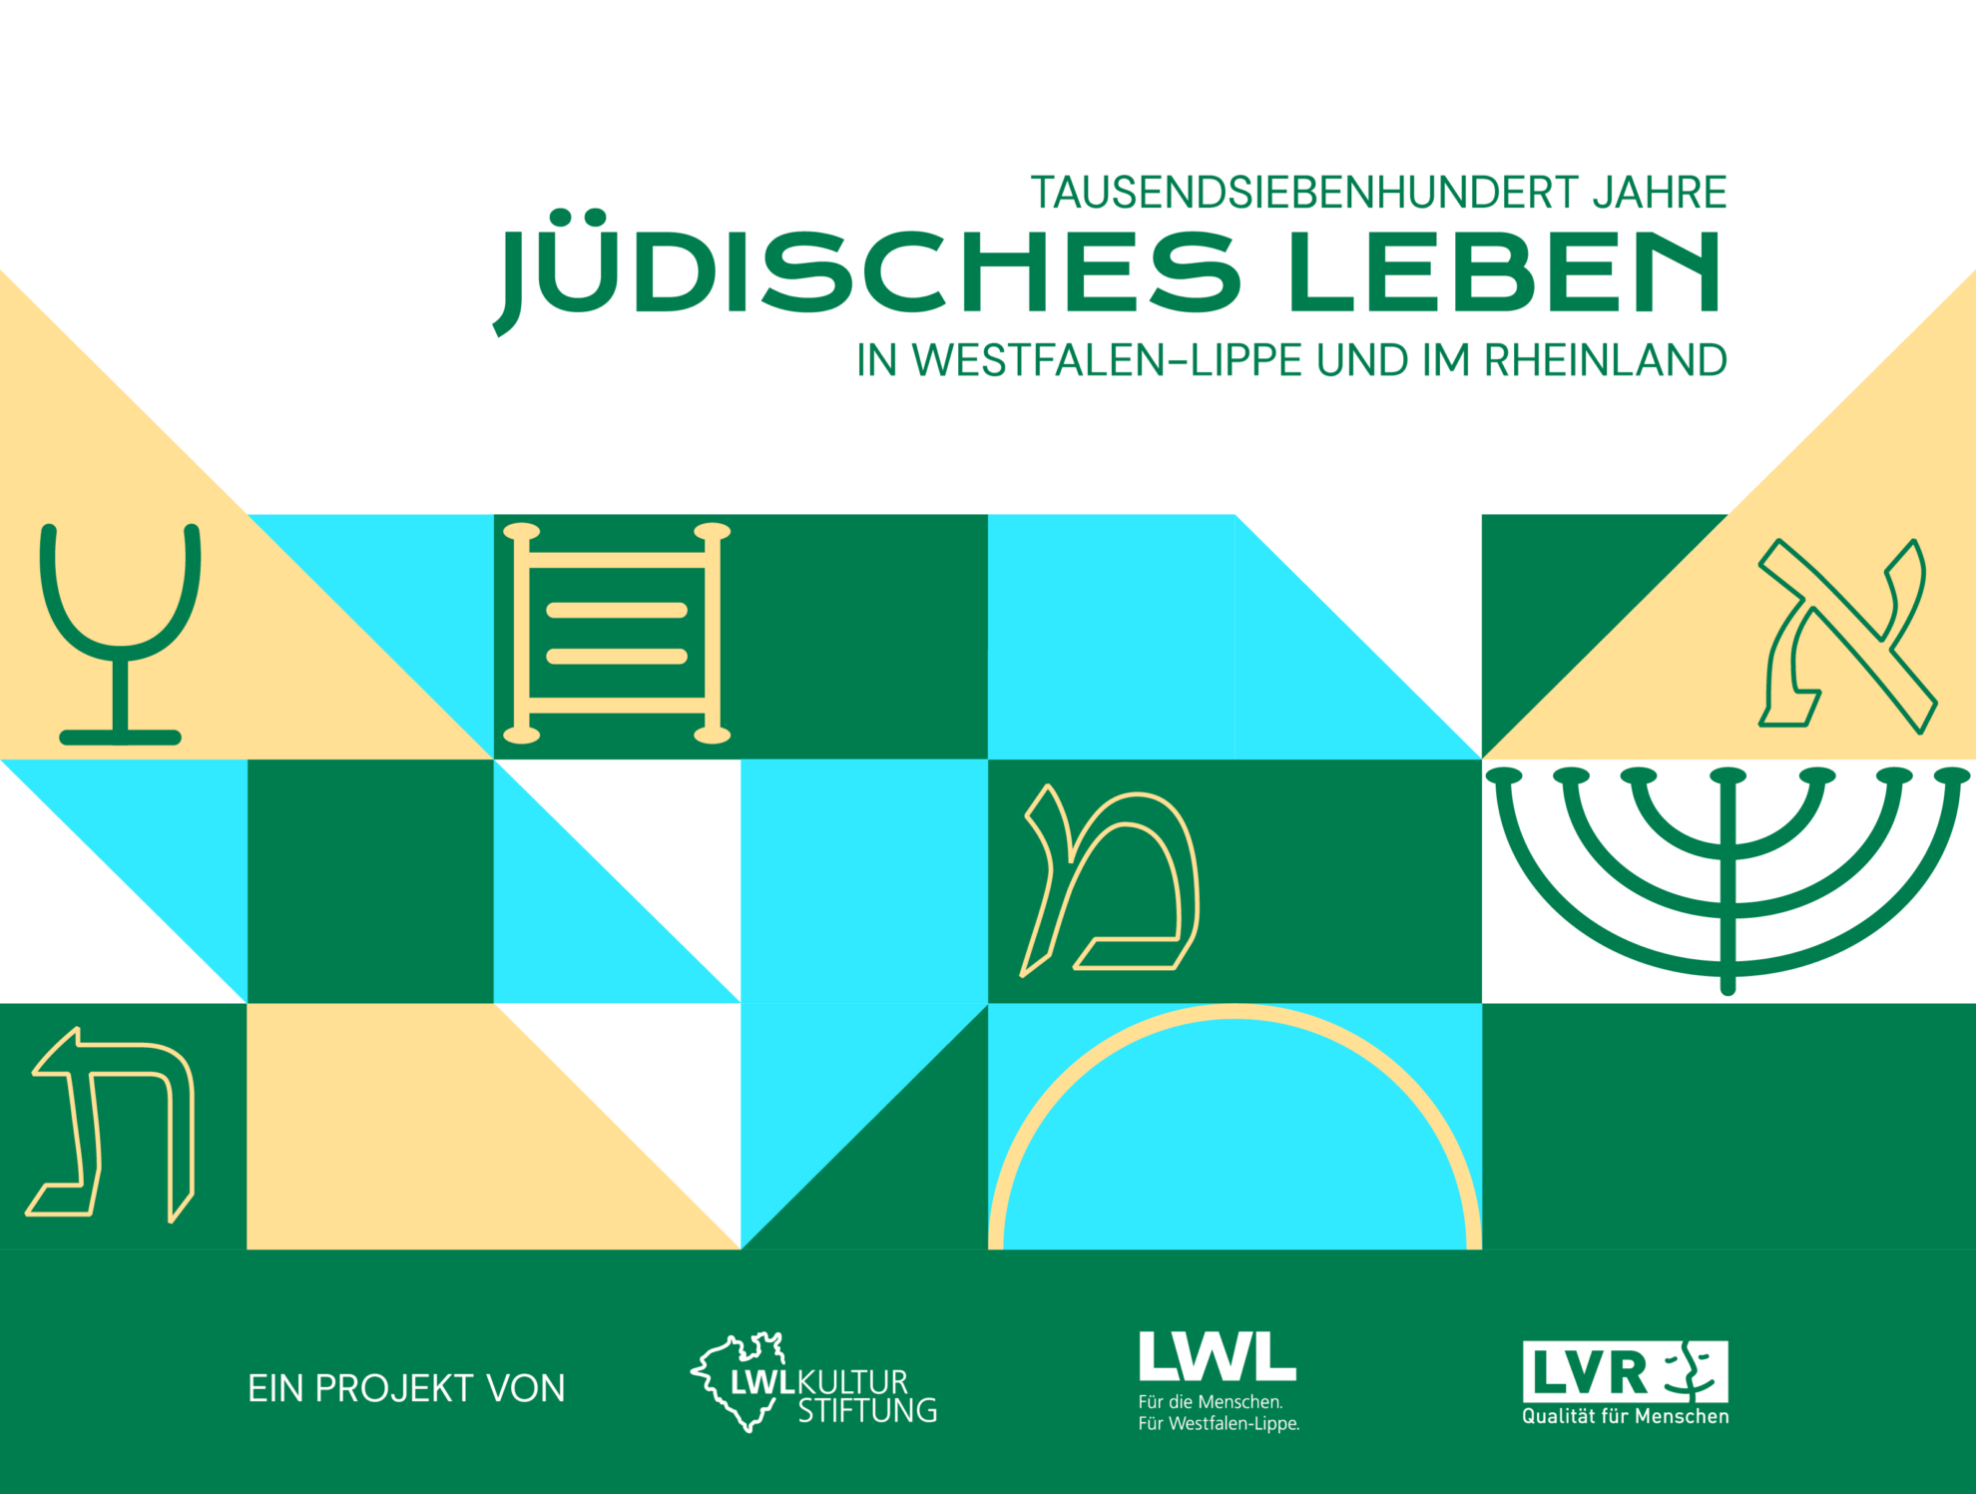 JLIWLR_1-T-1